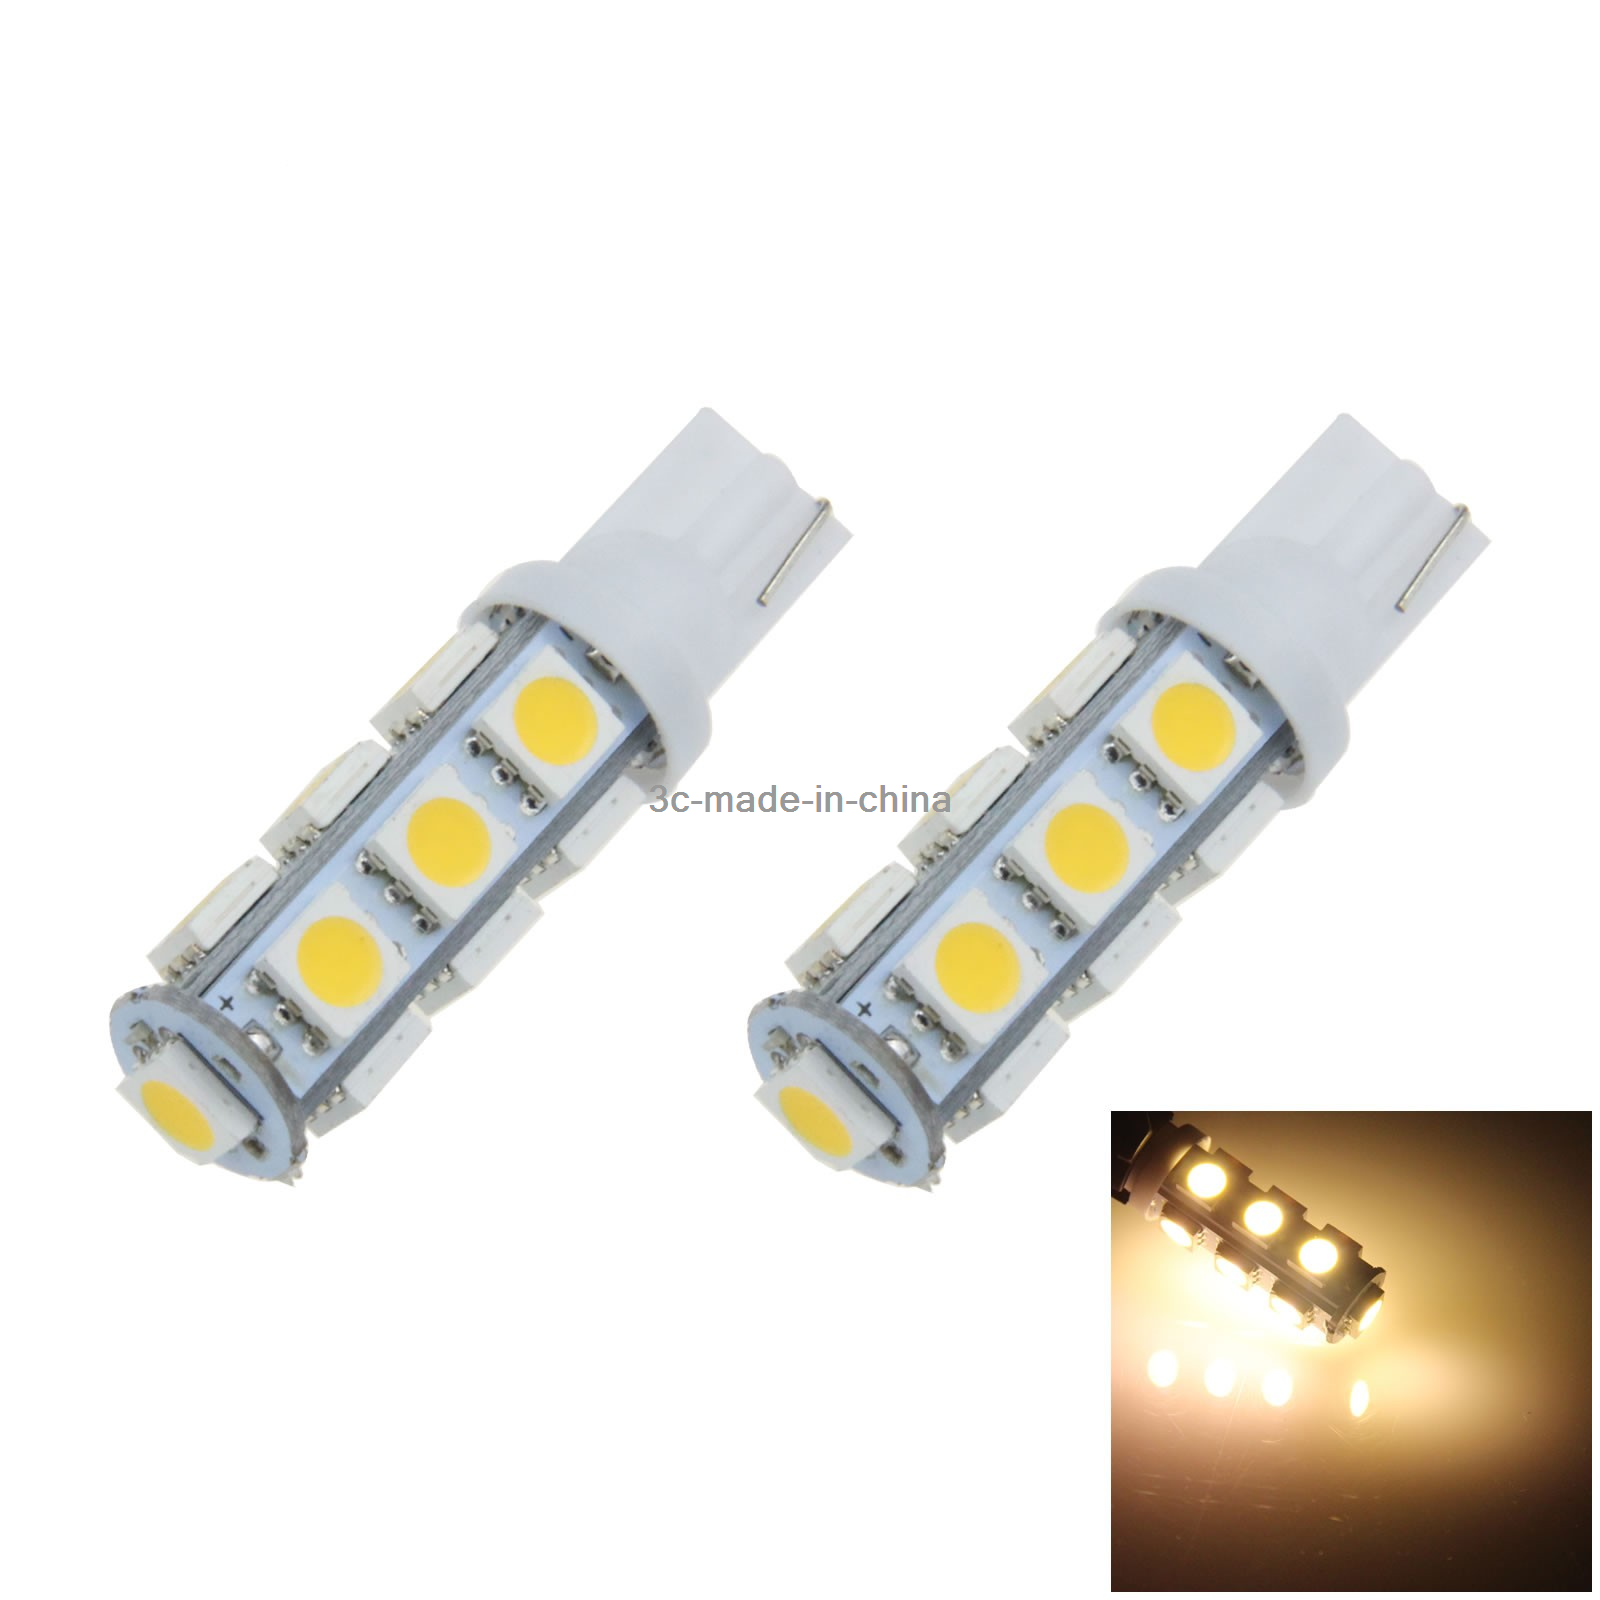 10x Warm white Car T10 W5W Roof Bulb License Plate Lamp 10 5630 SMD LED A058